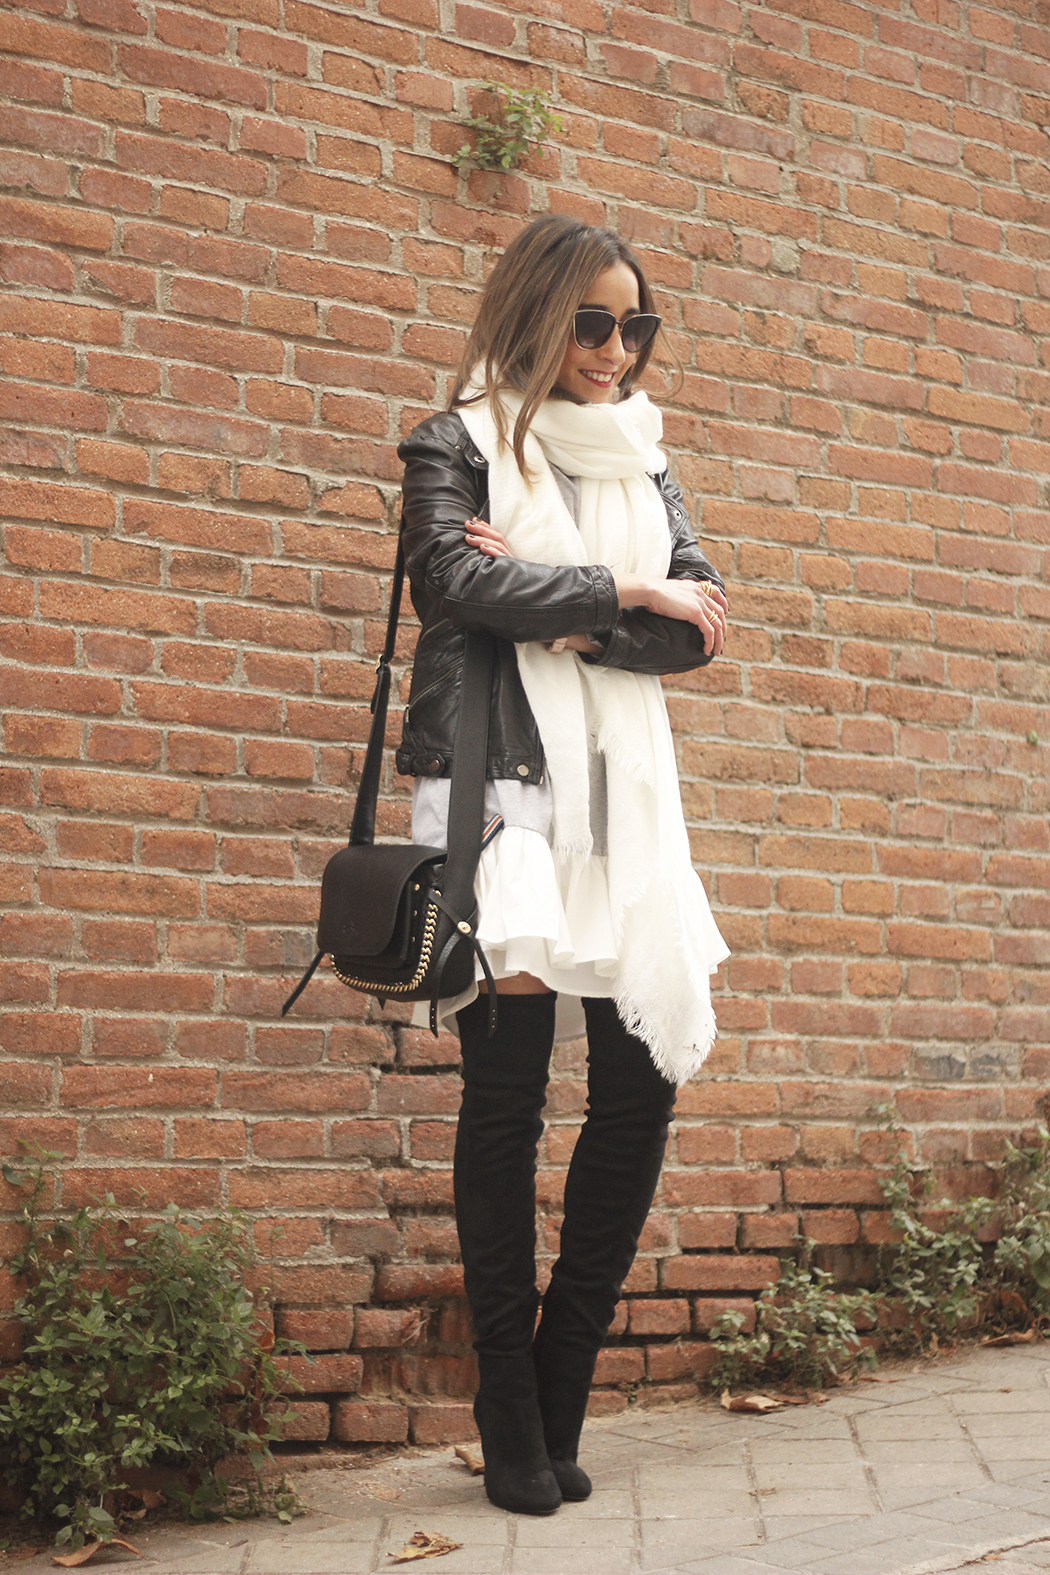 Leather Jacket gray dress over the knee boots style outfit fashion coach bag white scarf19